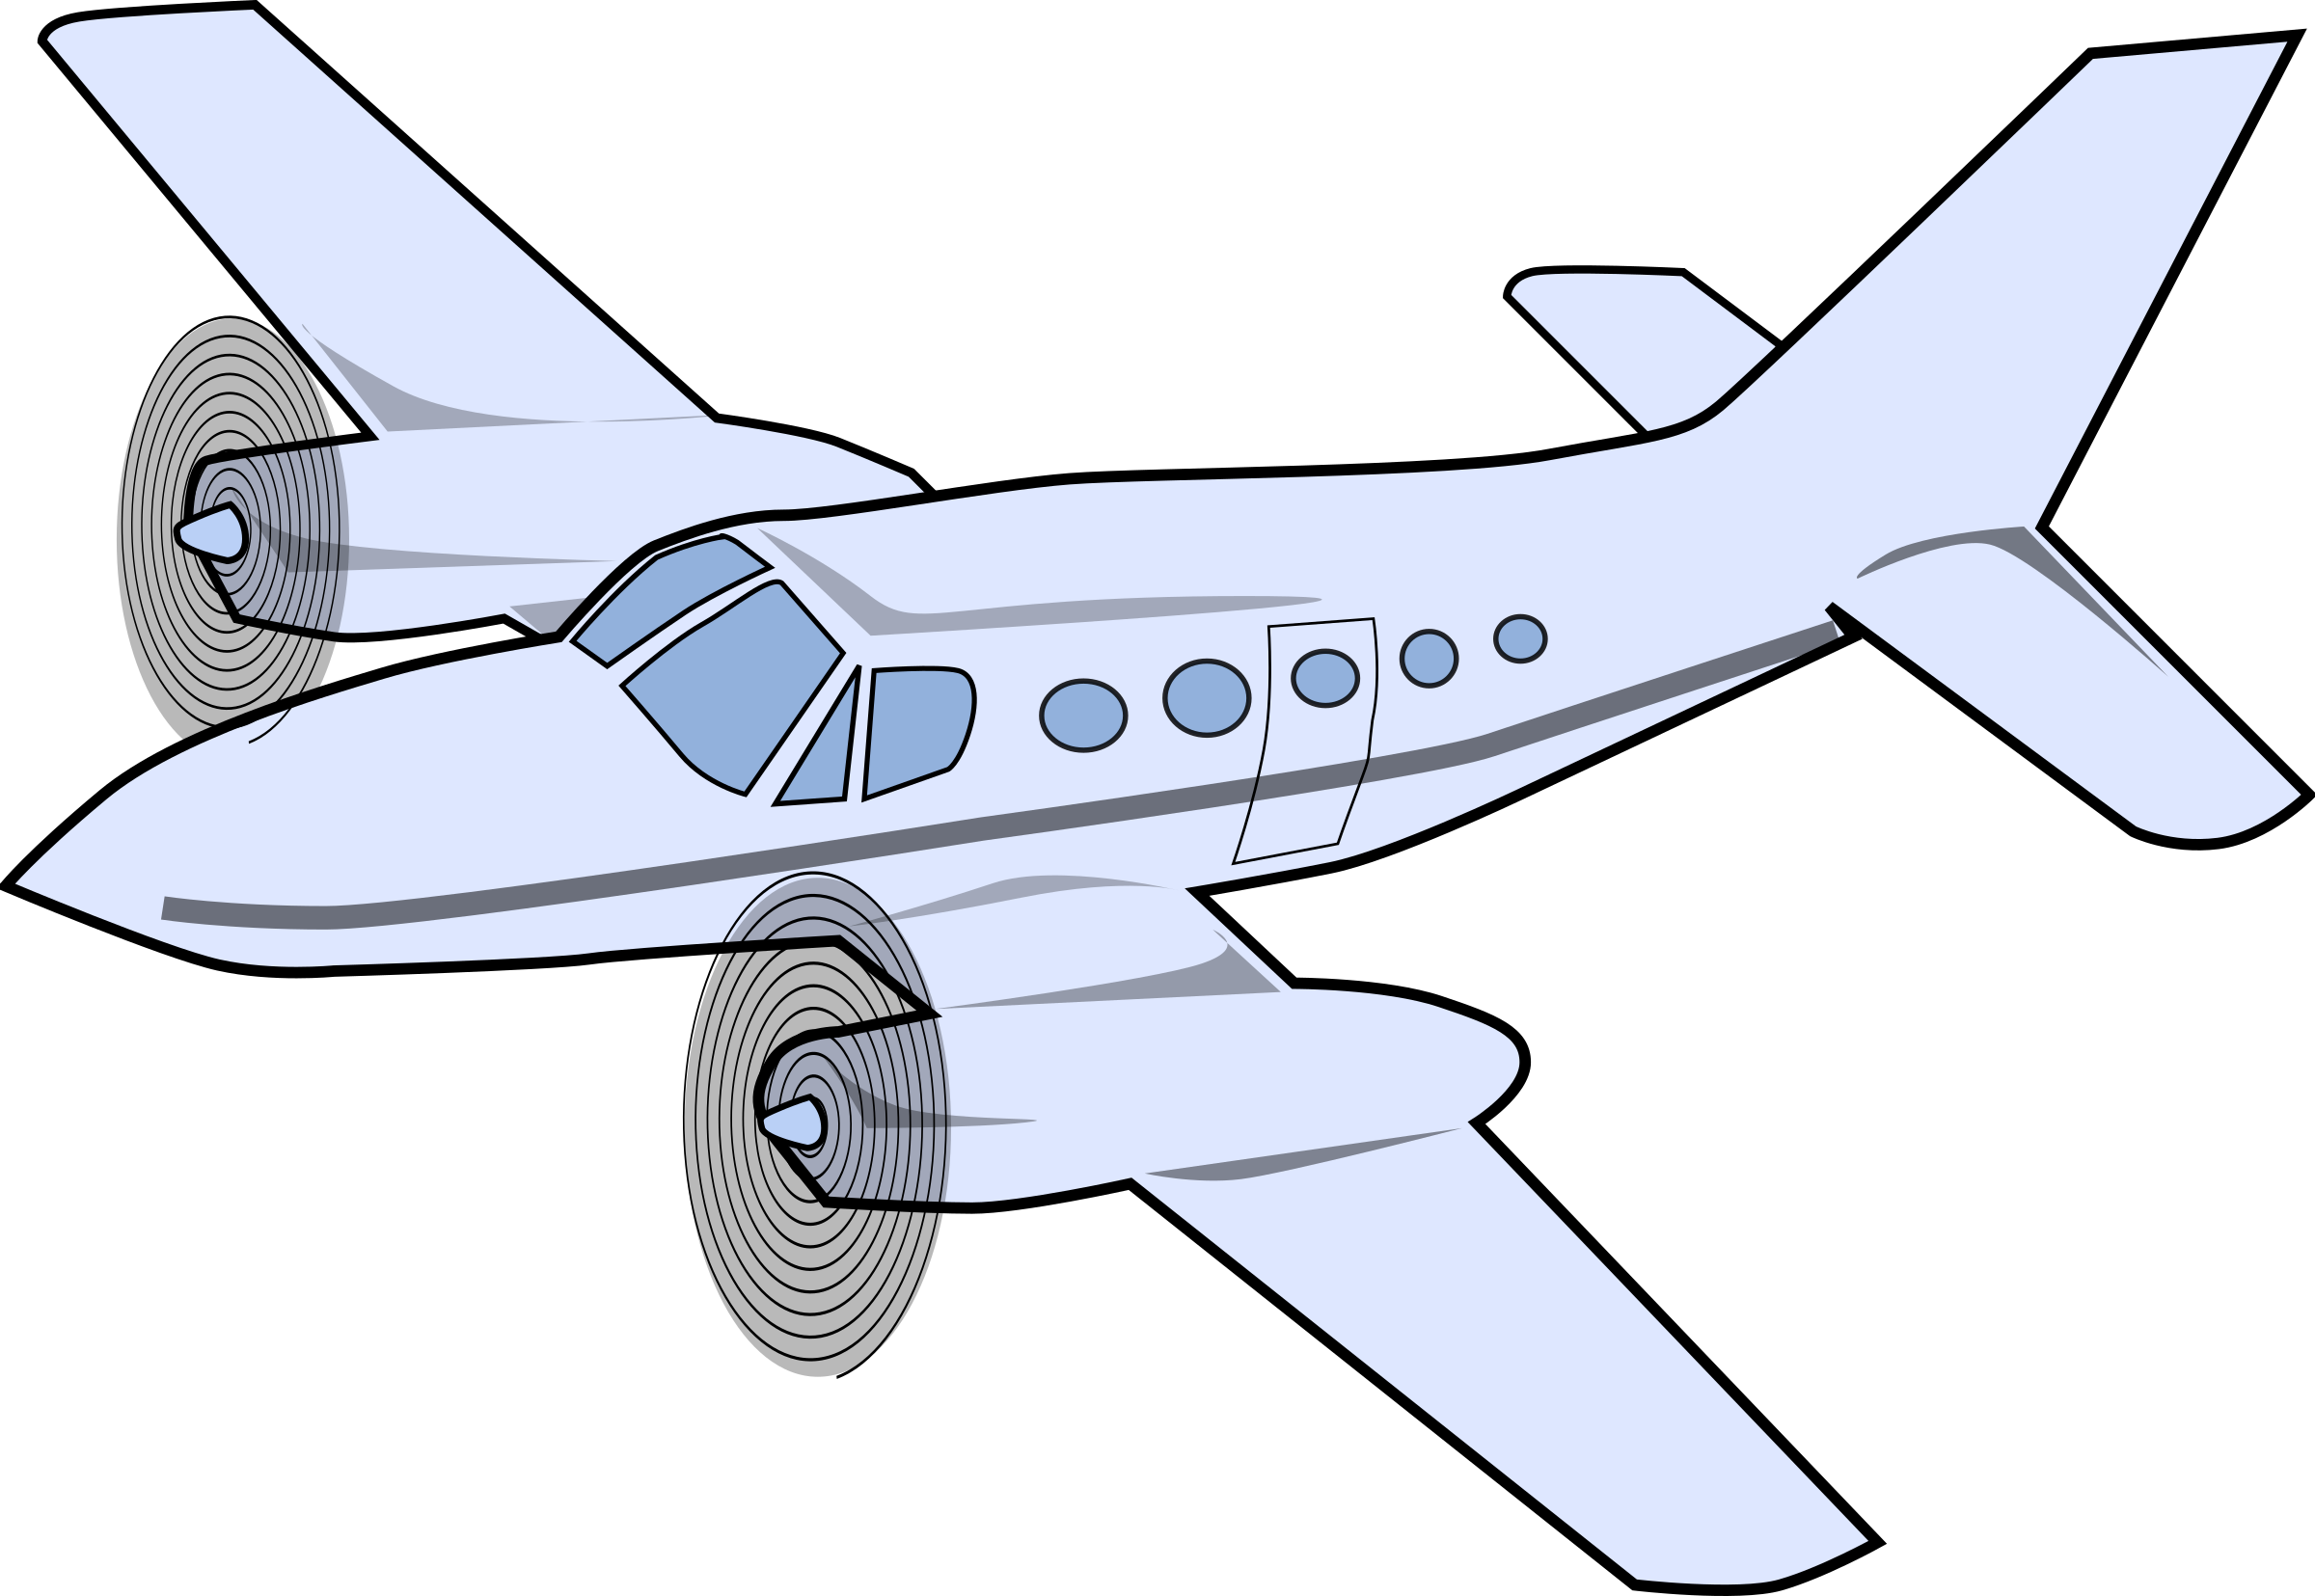 Jet Fighter clipart cessna airplane #15